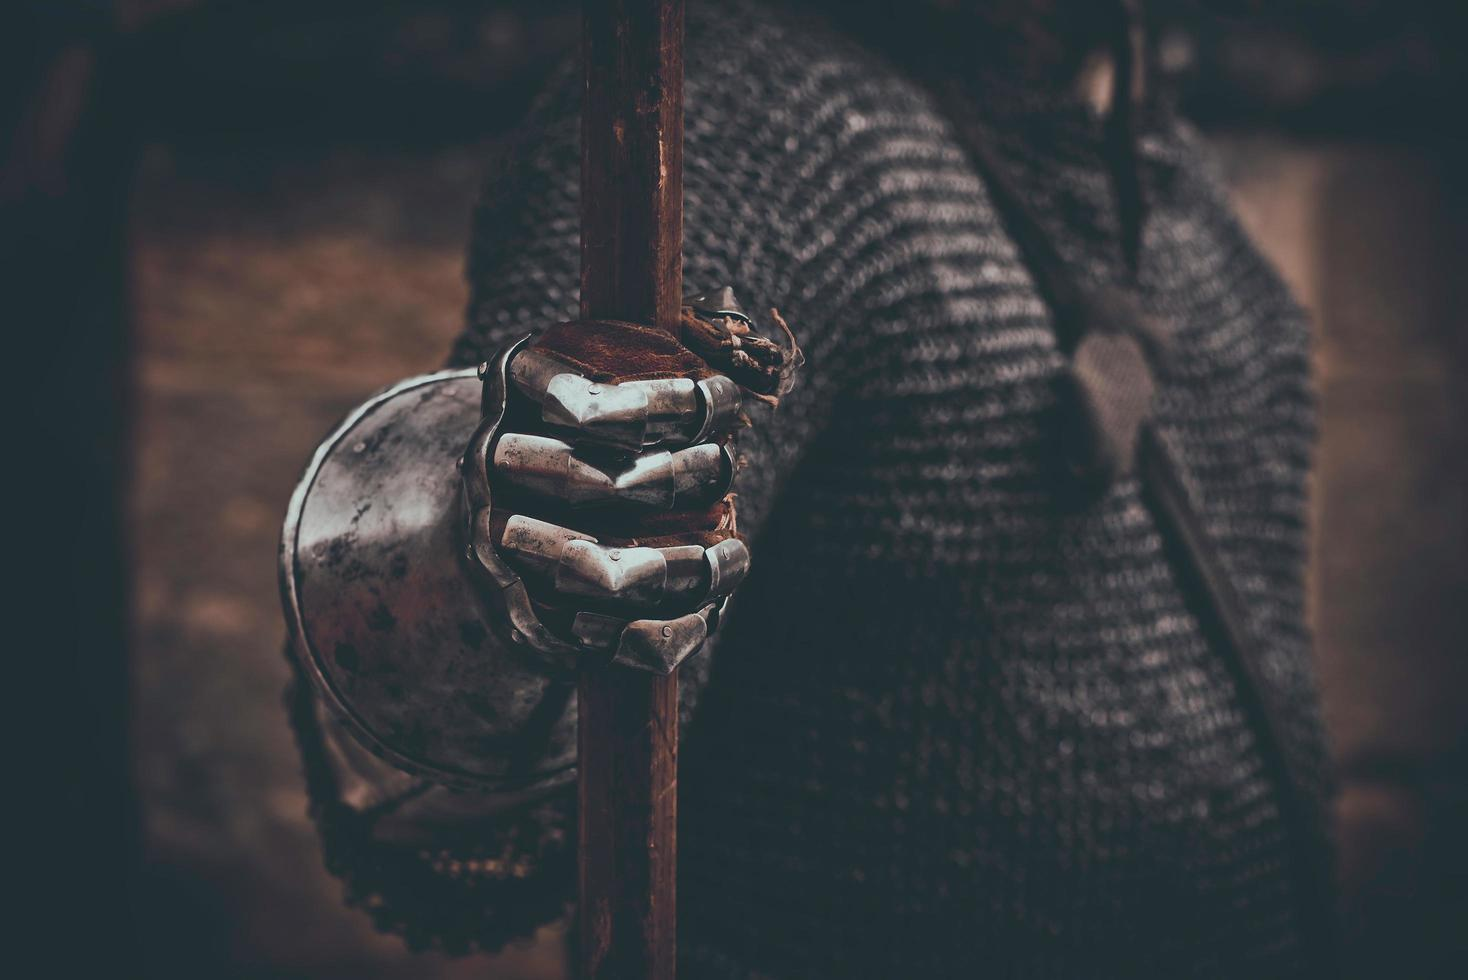 Knight's hand in metal gloves holding spear photo